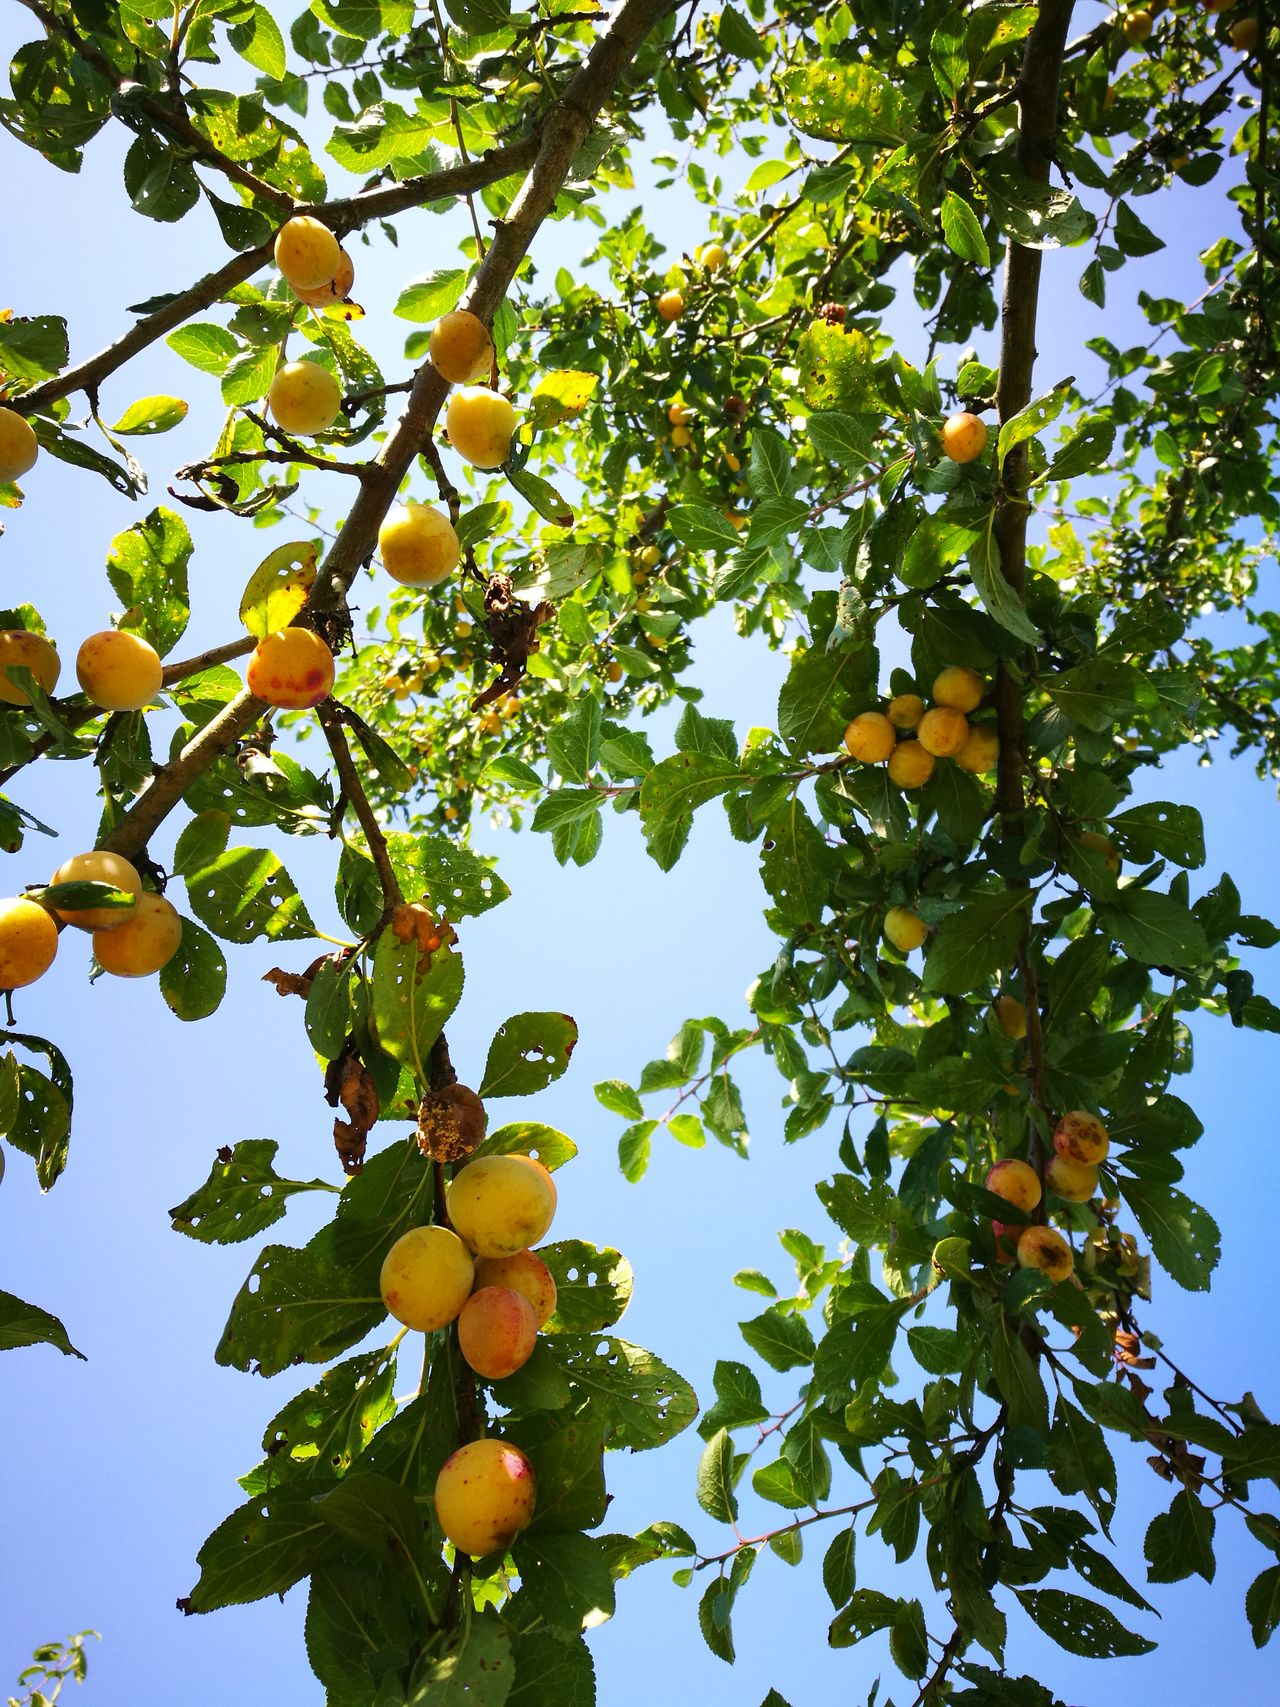 Plum Tree Sunshine Sun Light Summertime Summer Memories 🌄 Hanging Out Hello World Country Life